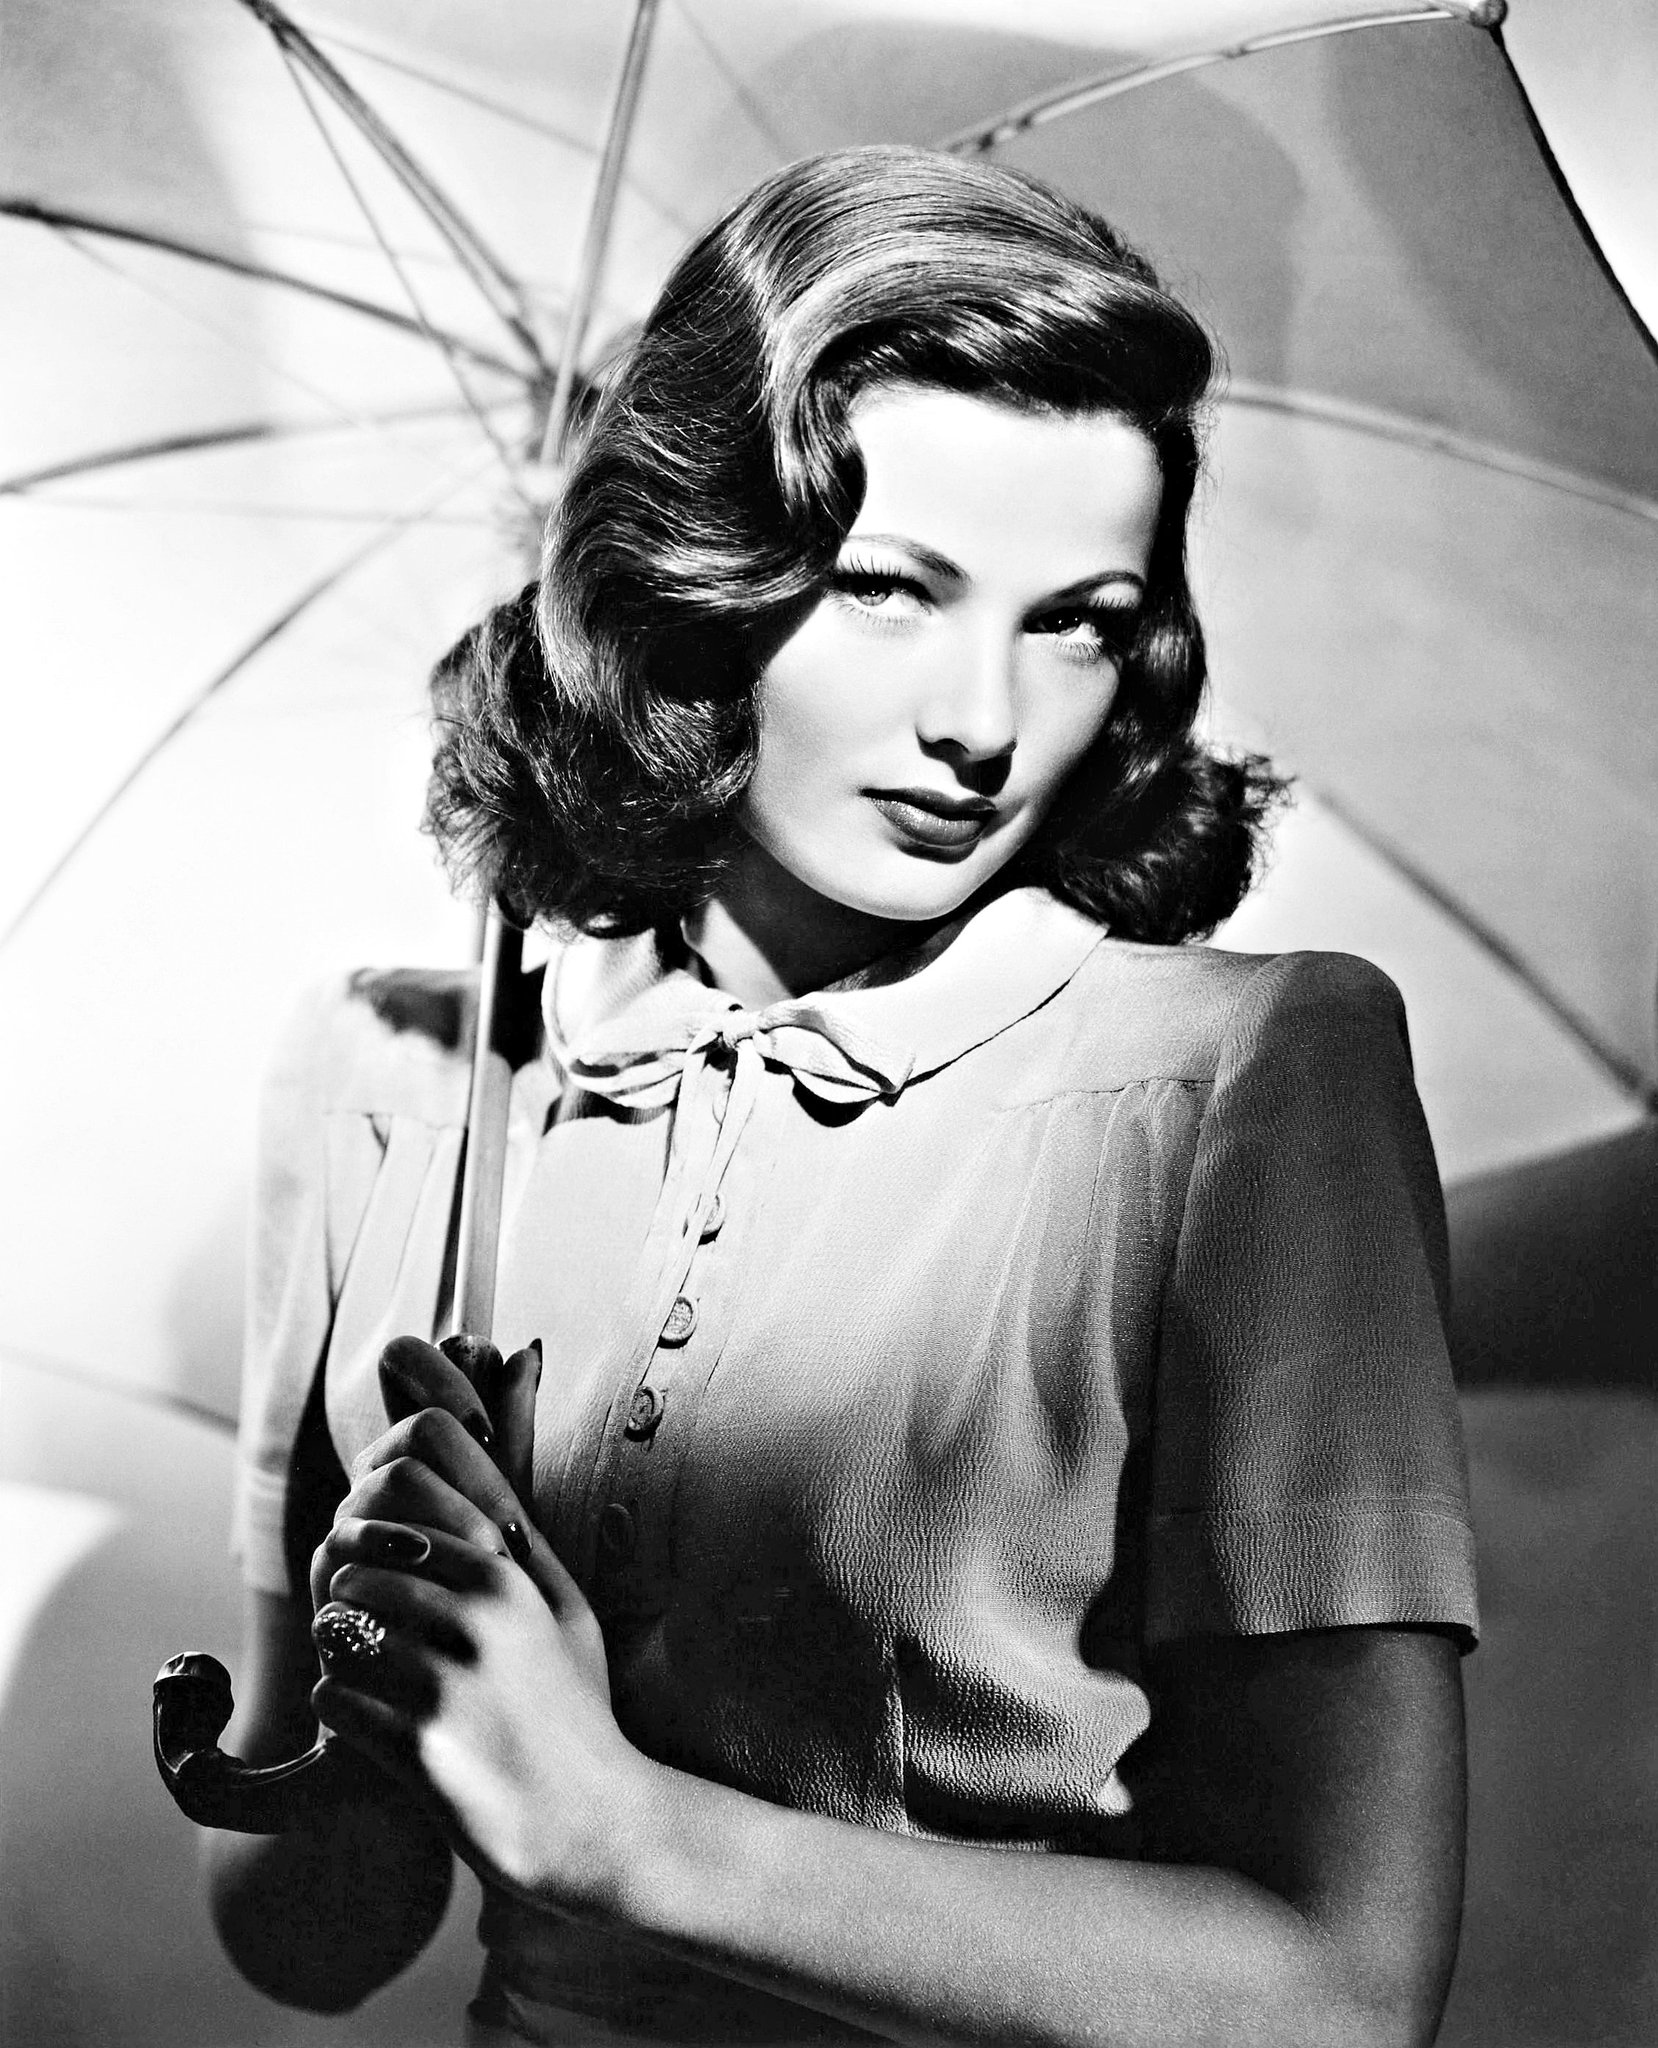 Gene Tierney a femme fatale with angel face... Sweet dreams and... happy weekend! https://t.co/PfkexeDk82